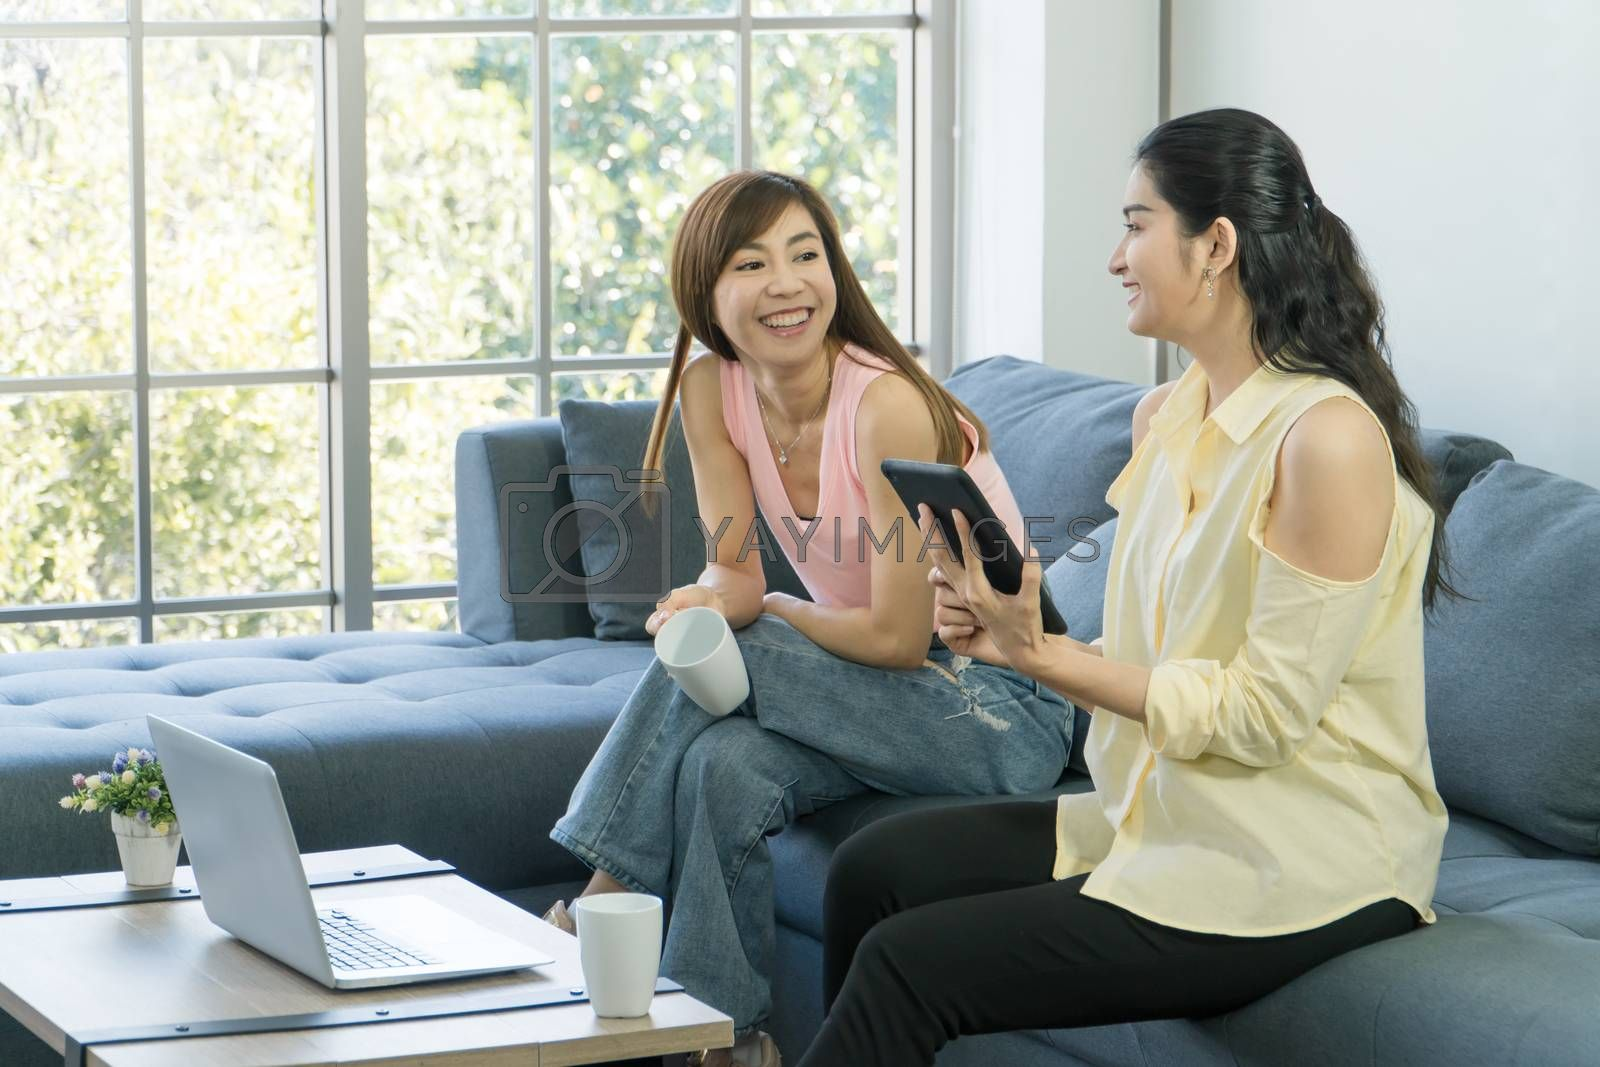 Two attractive Asian women are talking at home happily. Freelance women share casual wear, meetings, and computer technology together. learning use the internet  chatting with people on social media